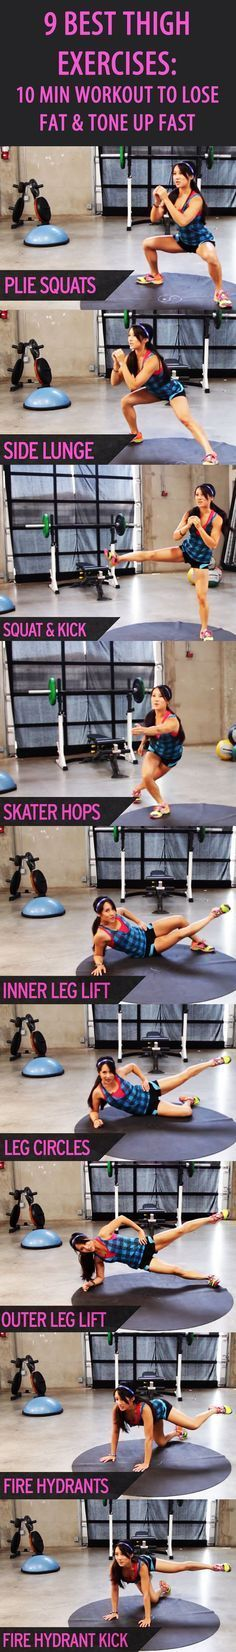 9 BEST THIGH EXERCISES: Our favorite fitness trainer Kelsey Lee shows you how to GET THINNER THIGHS IN JUST OVER TEN MINUTES! Tone your quads and hamstrings